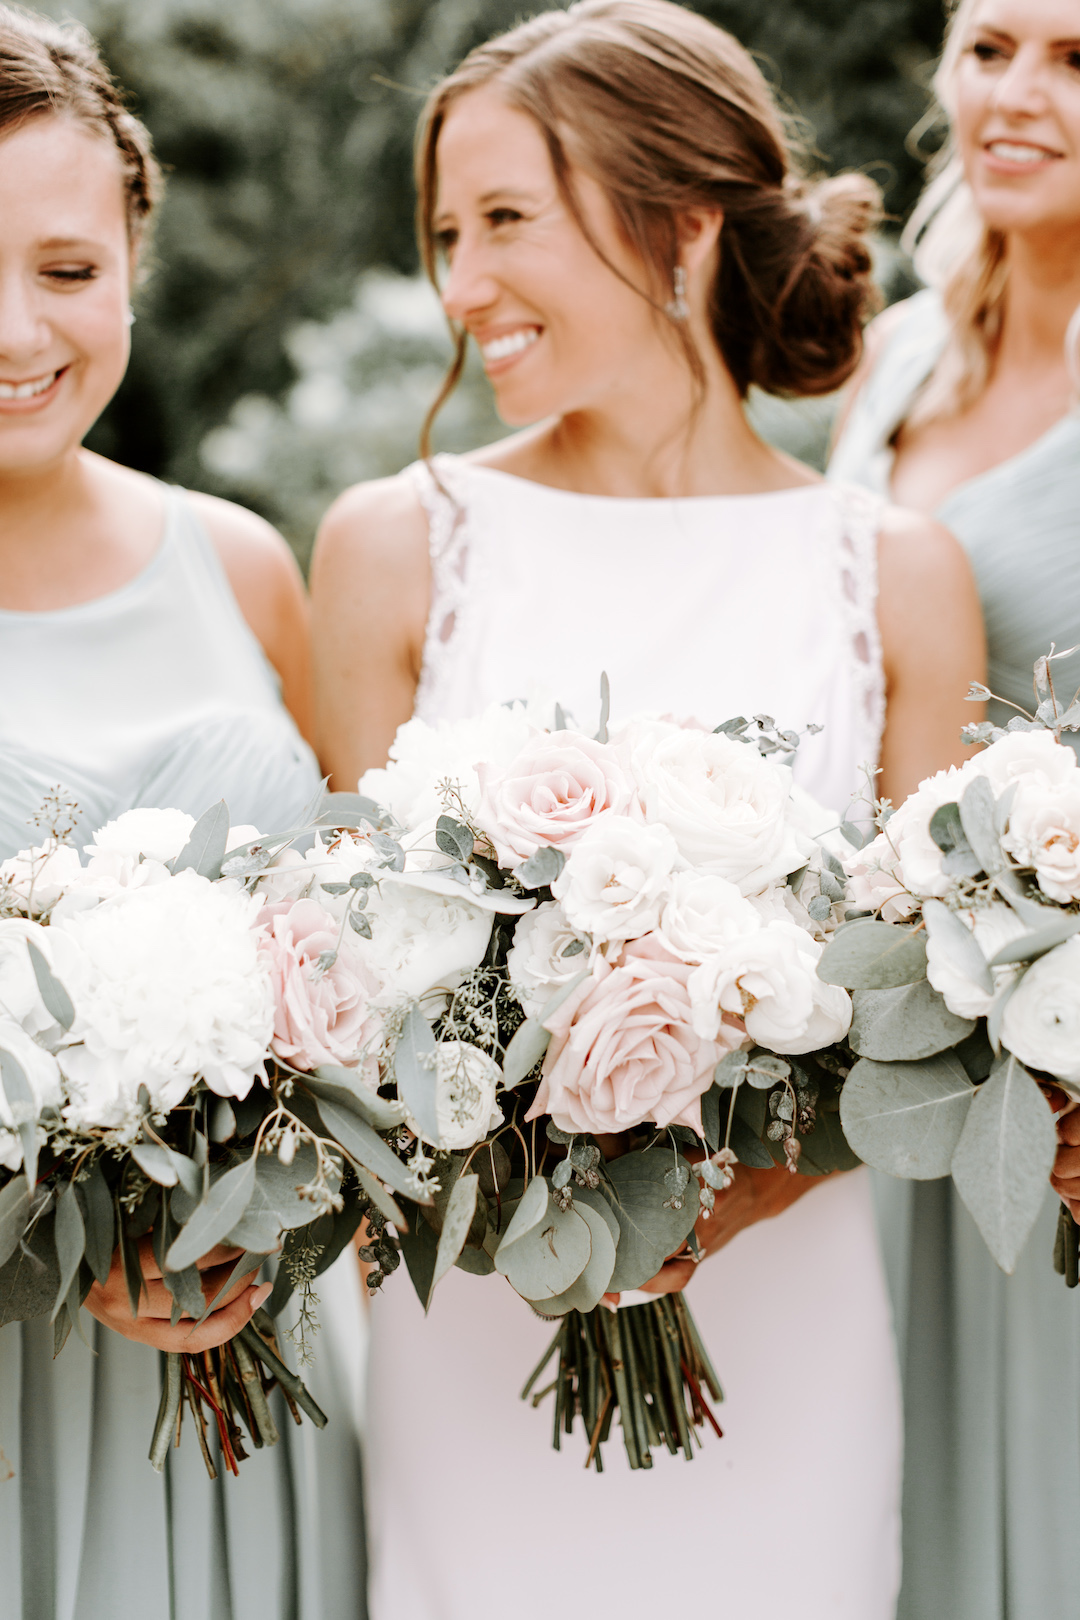 Pink and white wedding bouquets: Charming CD&ME outdoor wedding captured by Eiza Photography featured on CHI thee WED. Find more wedding inspiration at chitheewed.com!